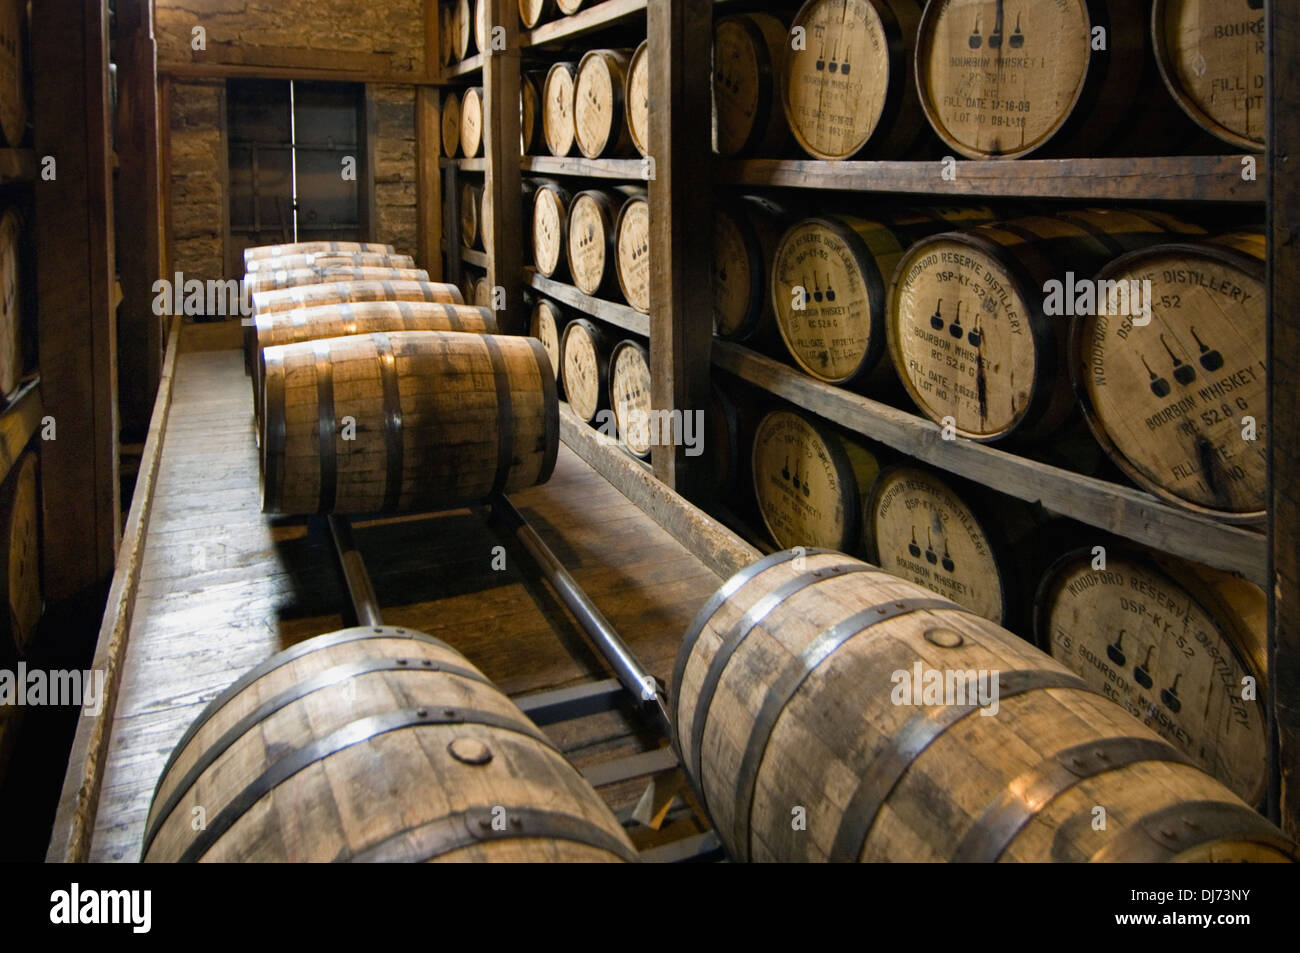 Barrels Of Bourbon Aging In A Rick House At Woodford